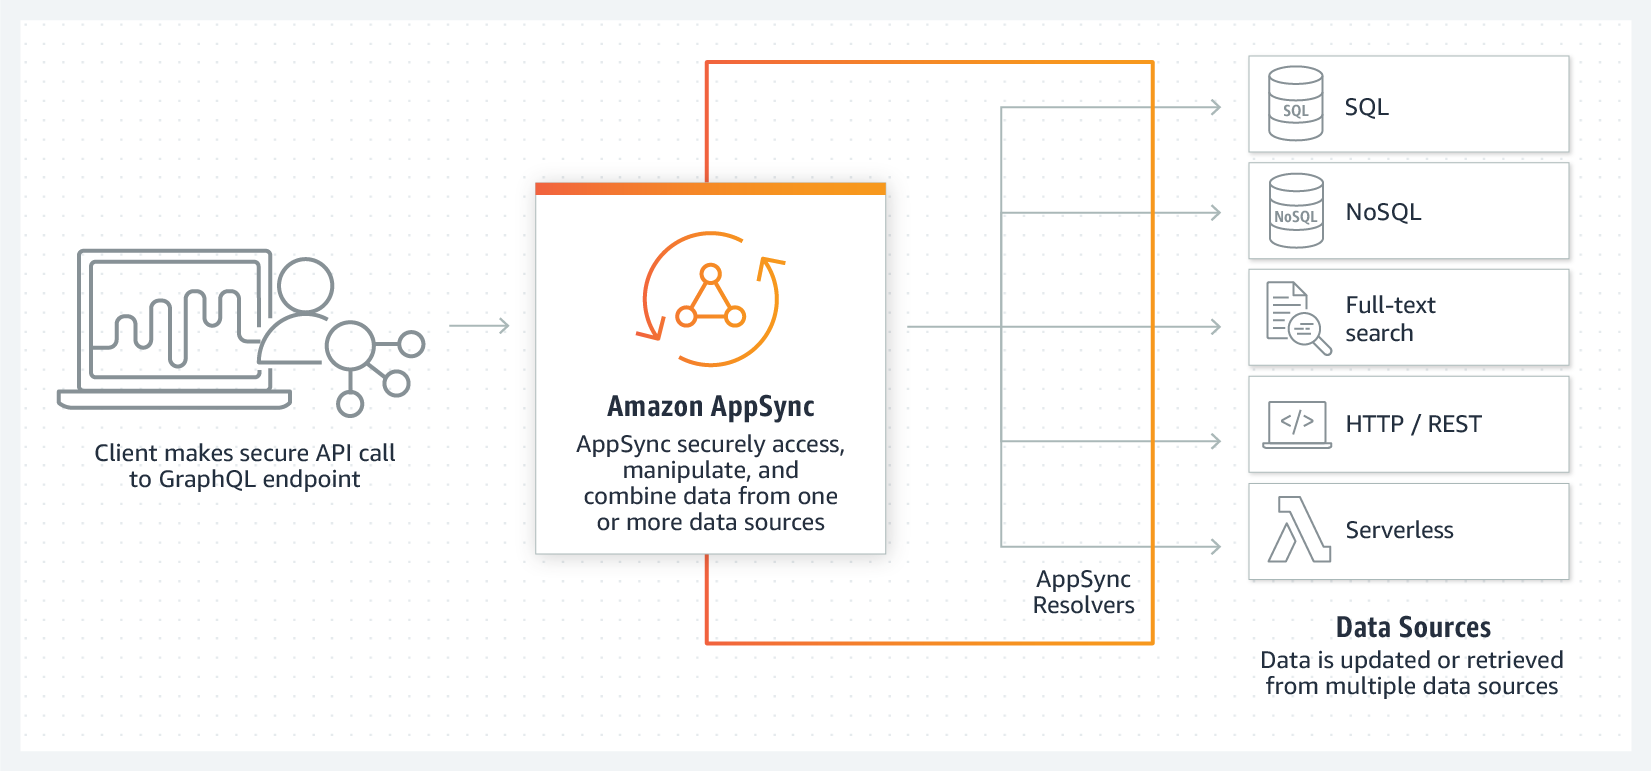 Product-Page-Diagram_AppSync_Polyglot-Back-end-Data-Access@2x-china-rebranded